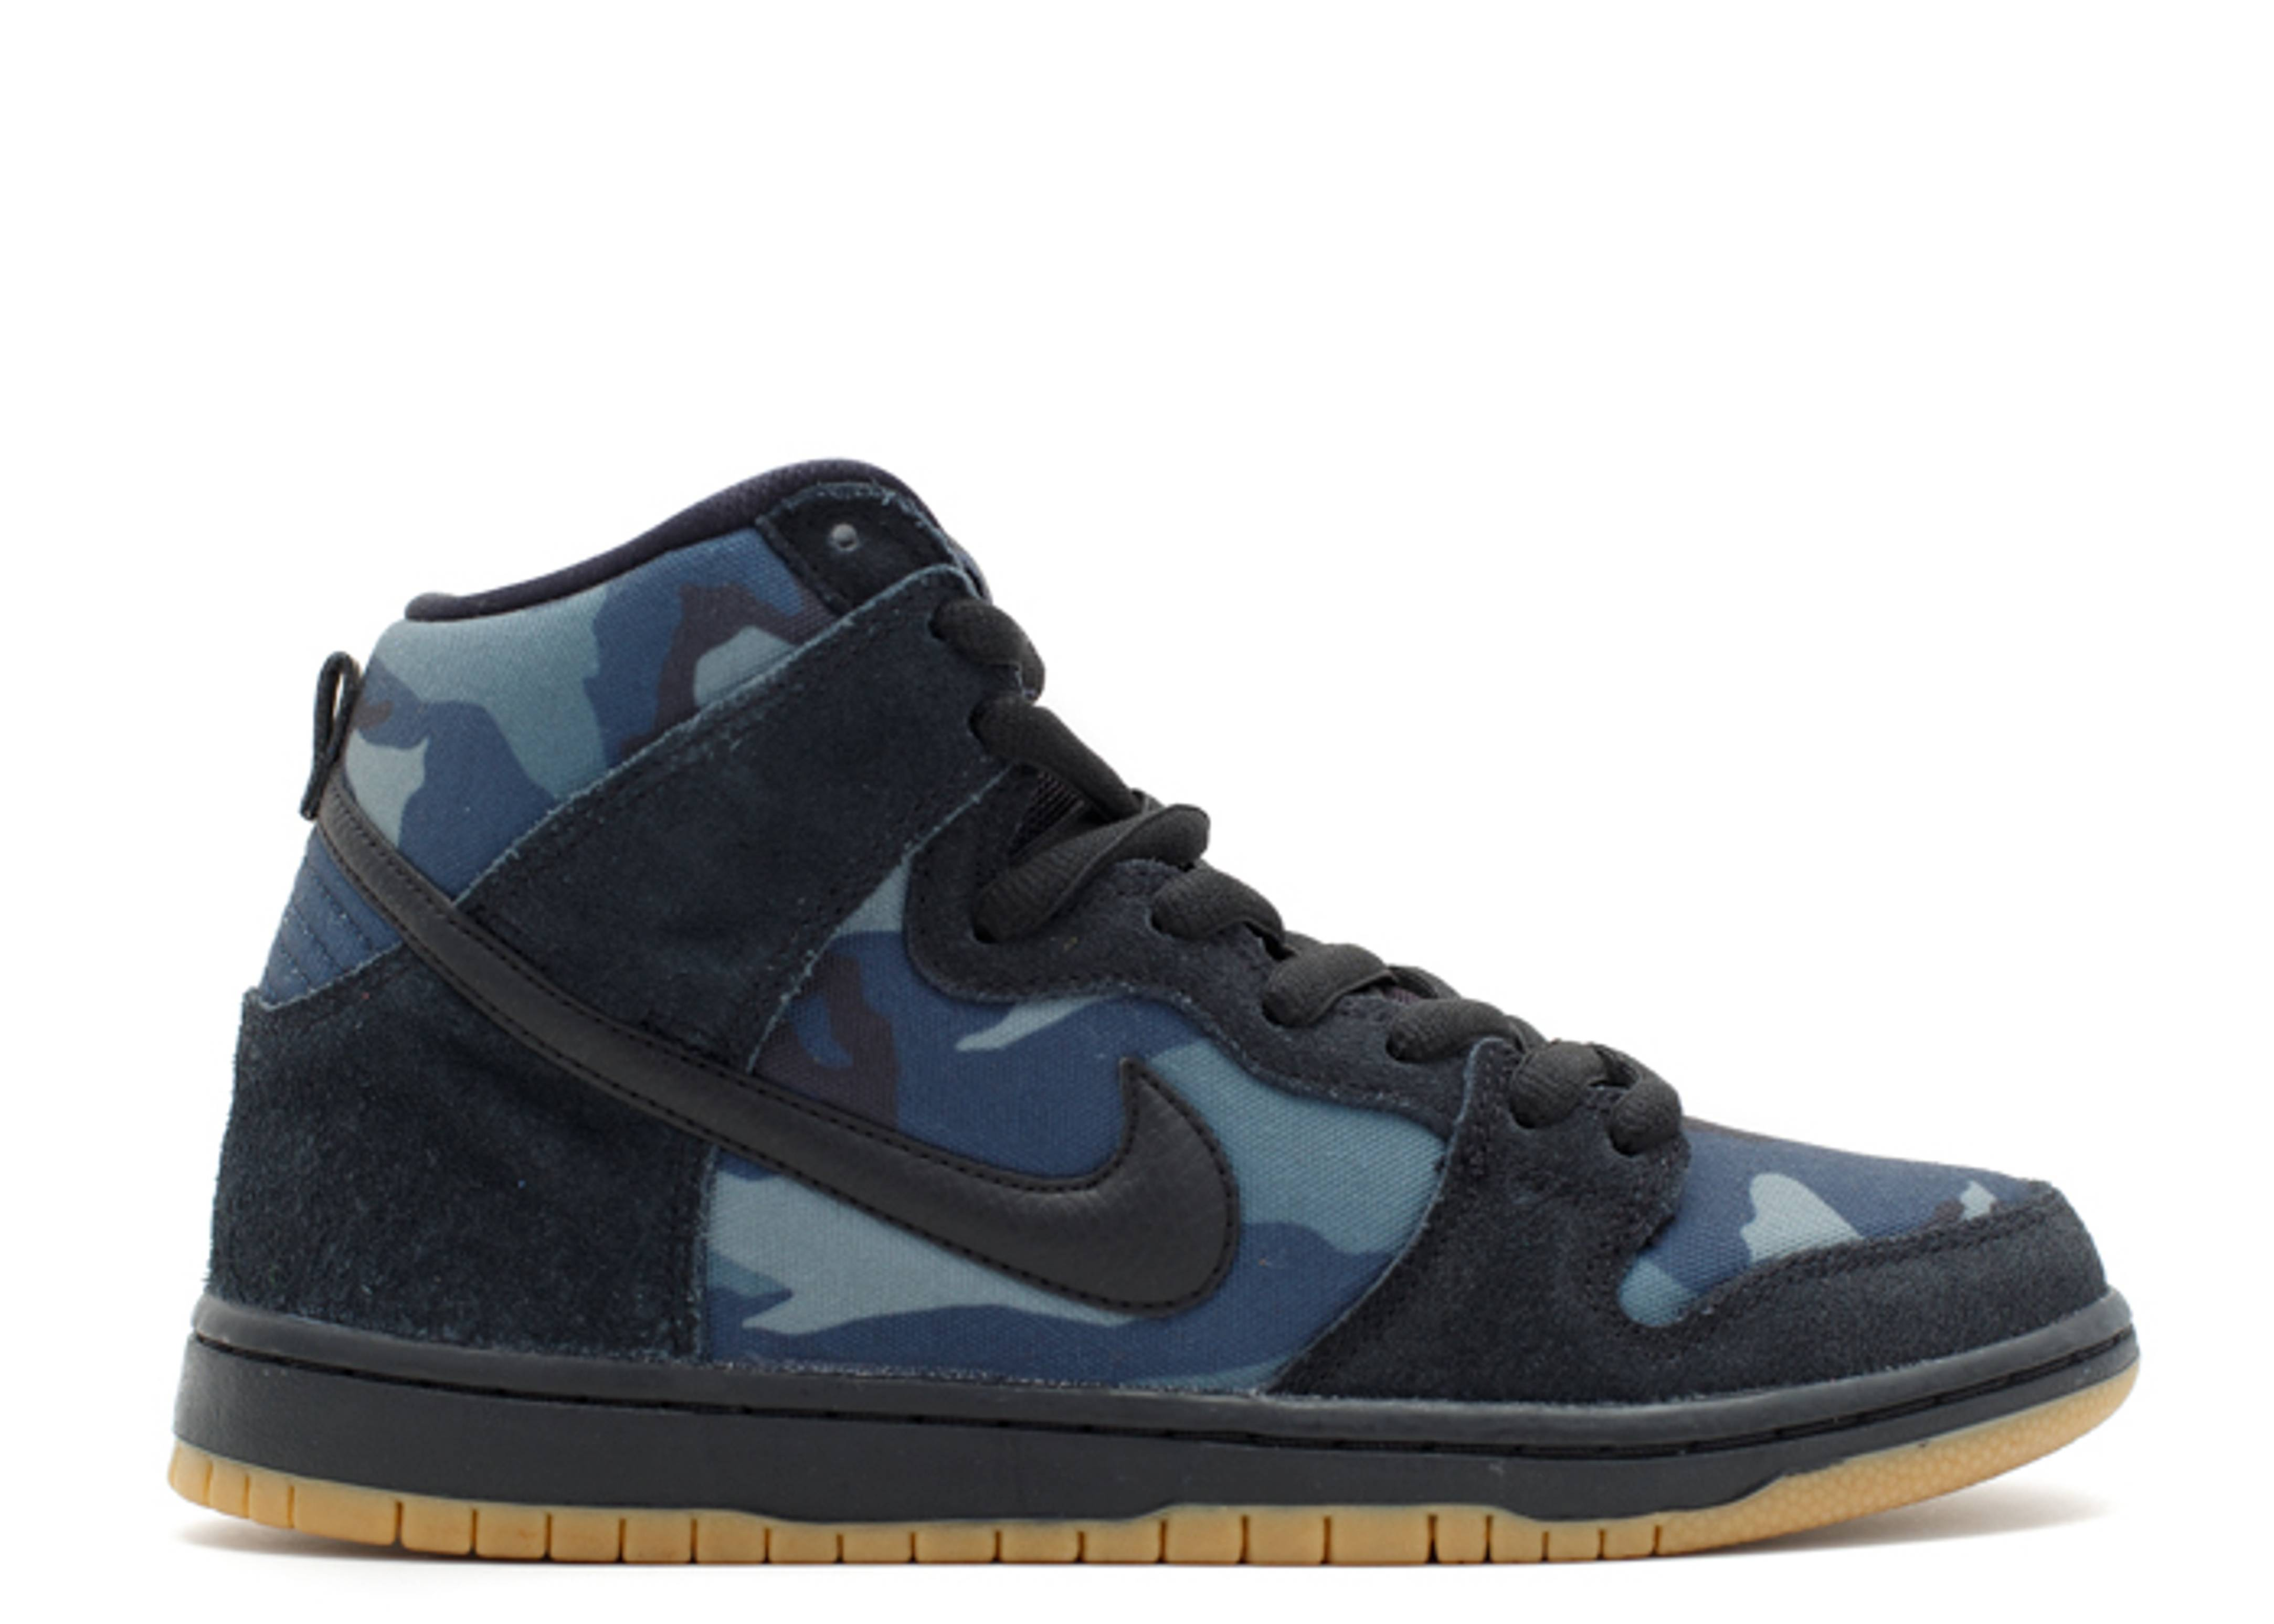 dunk high pro sb nike 305050 024 black black. Black Bedroom Furniture Sets. Home Design Ideas